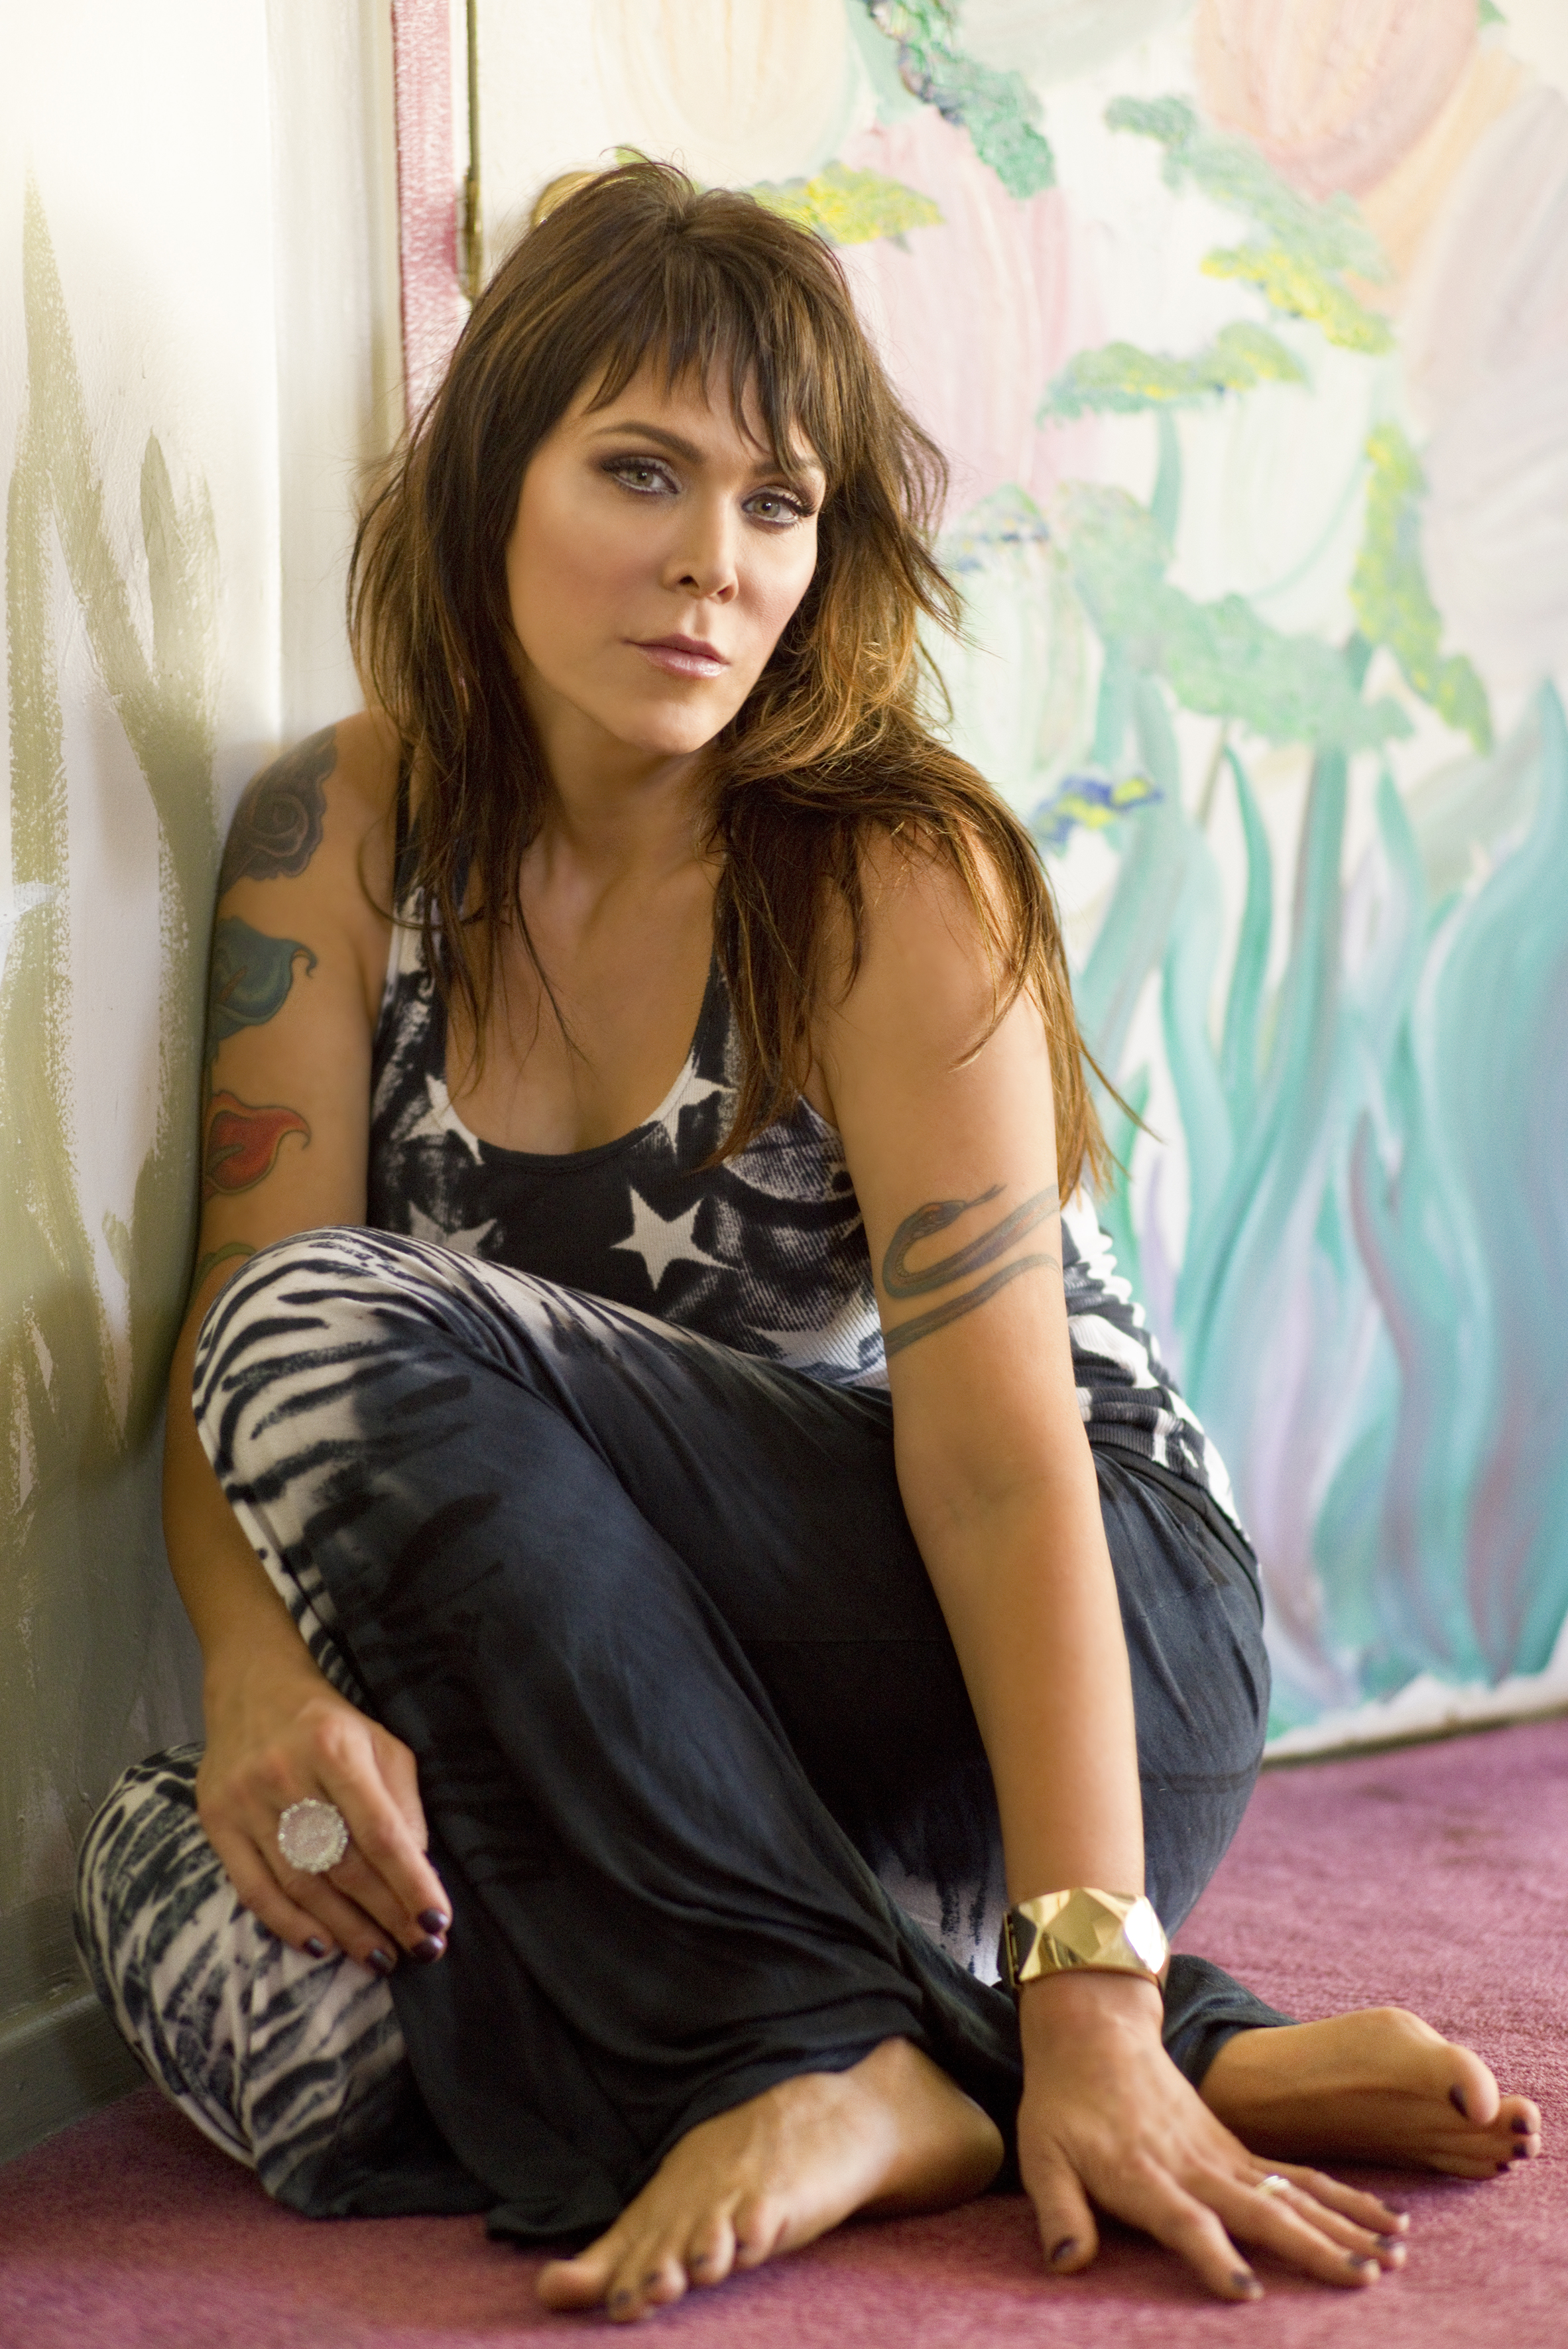 Beth Hart 061 by Greg Watermann